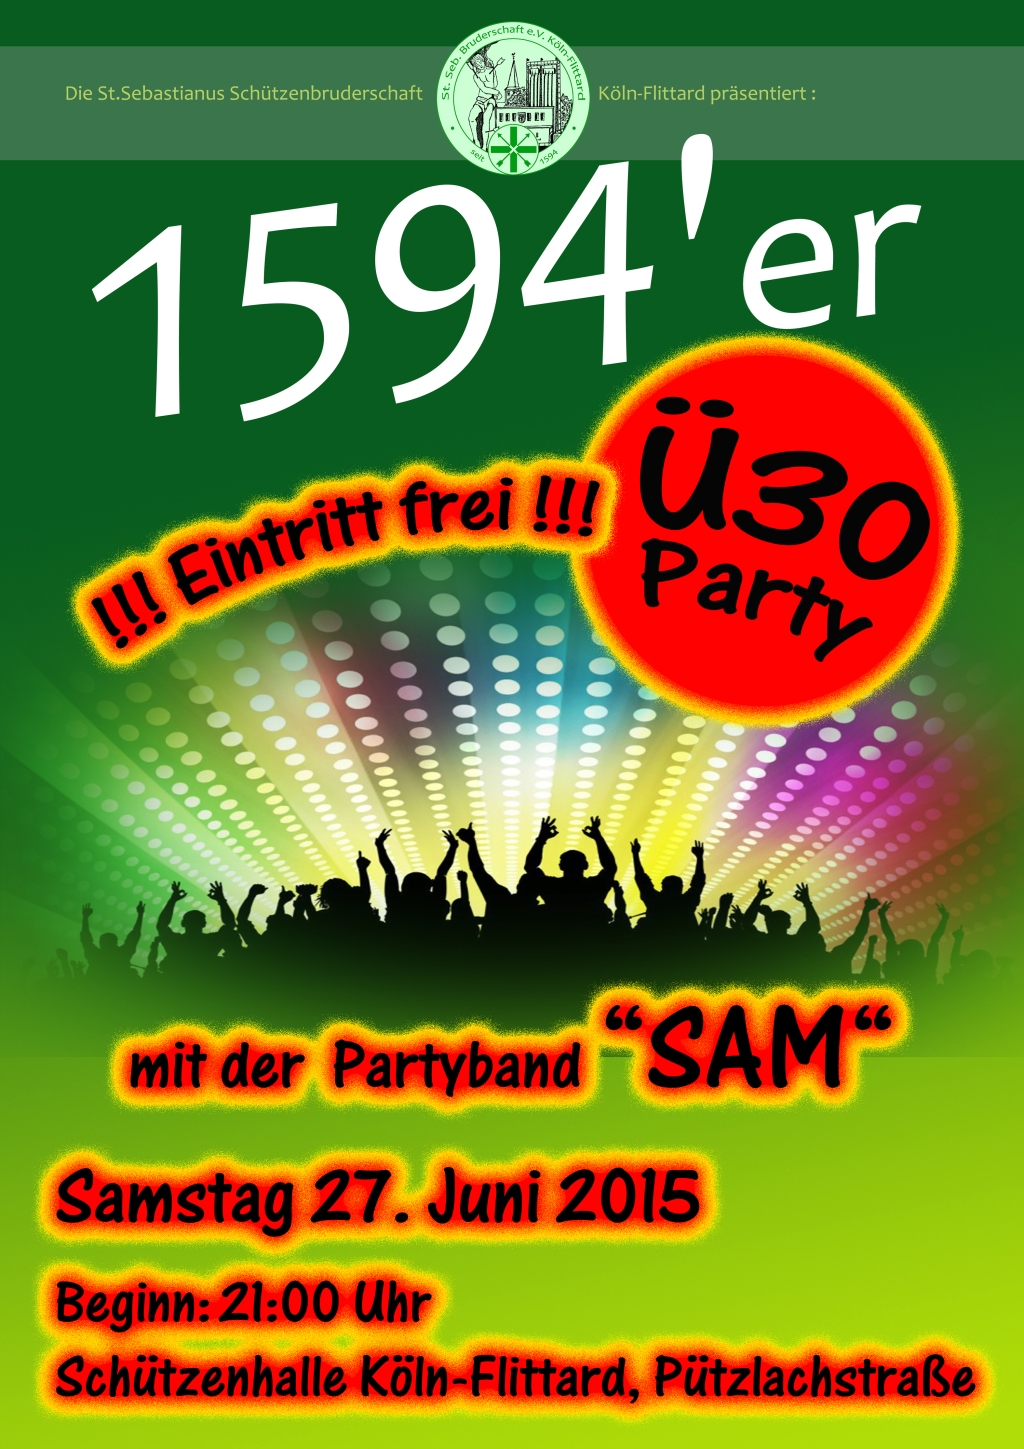 2015-Ue30-Party-Plakat